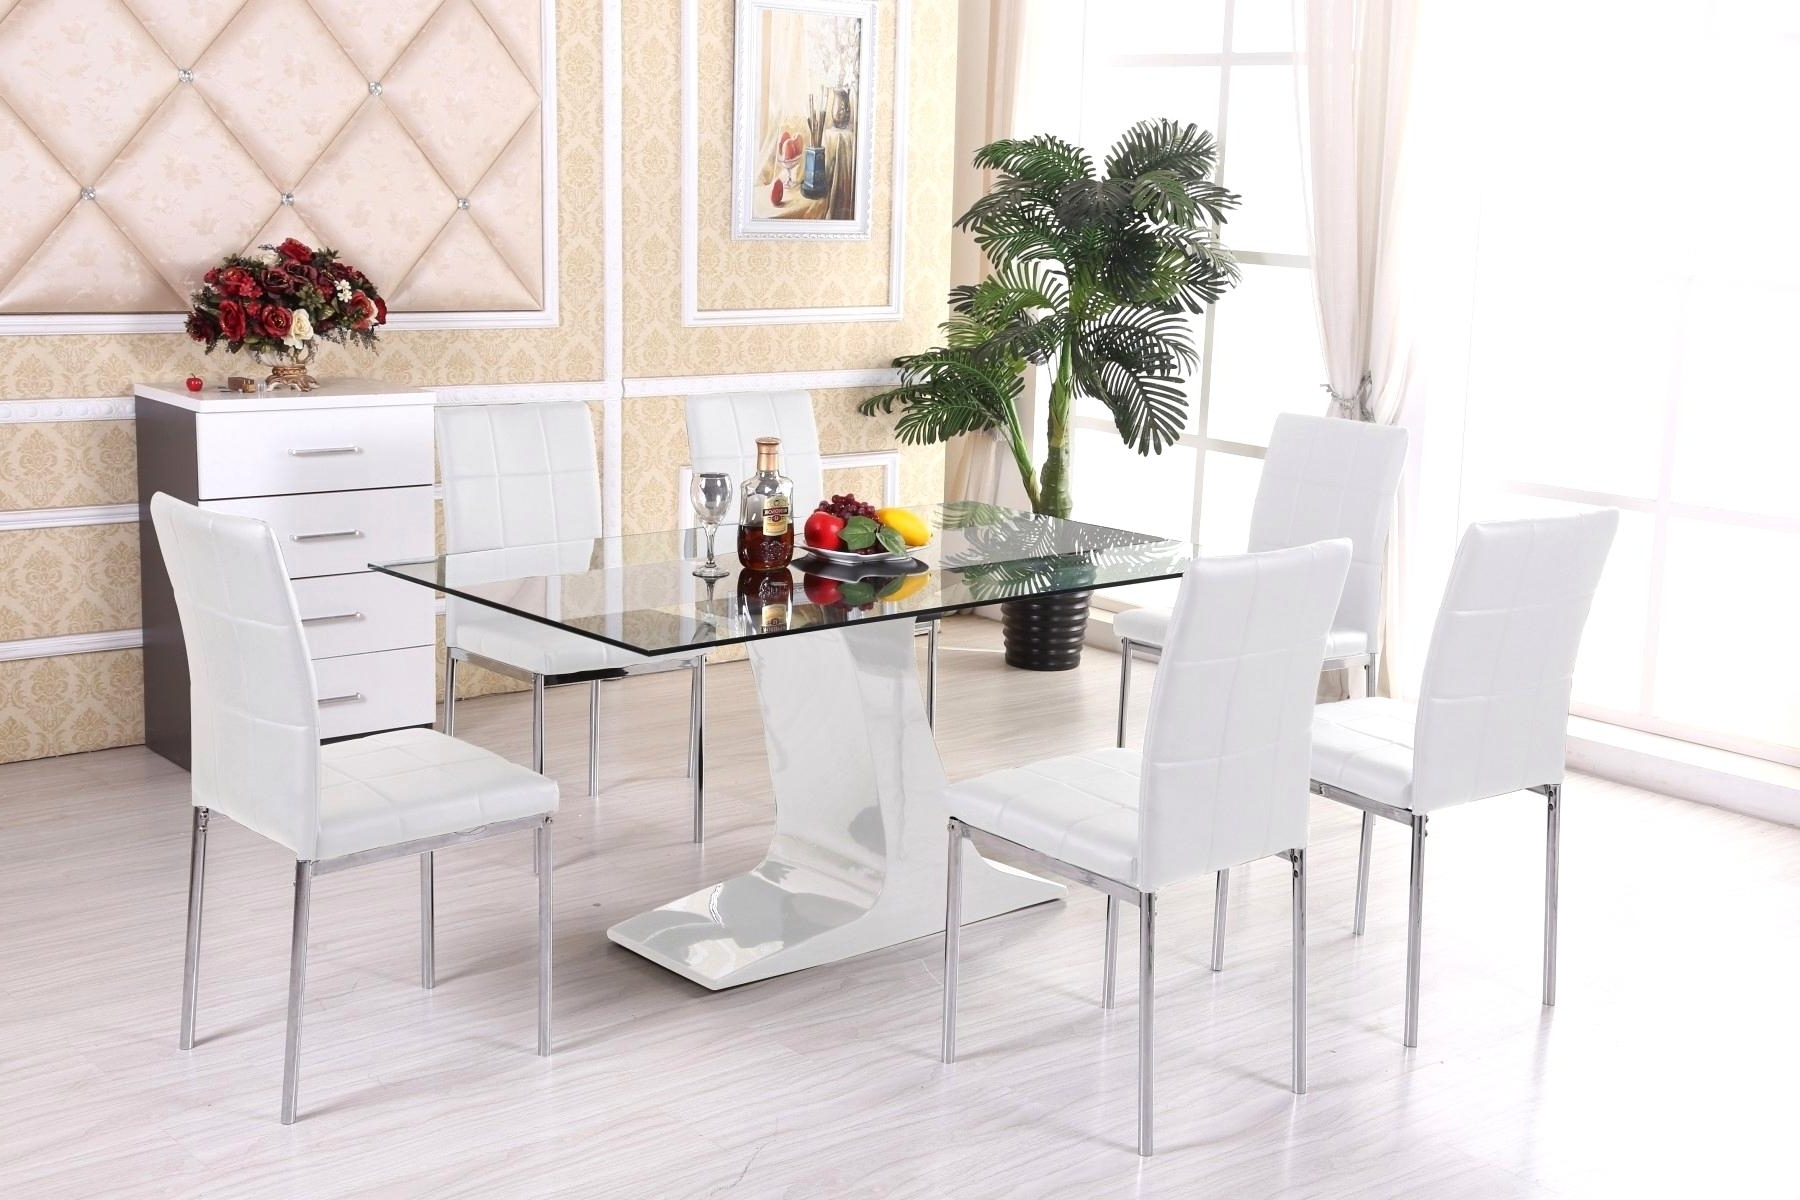 White Glass Dining Tables And Chairs Pertaining To Most Recent Marvelous Dining Room Sets White Glass Ining Table And Chairs Modern (View 2 of 25)